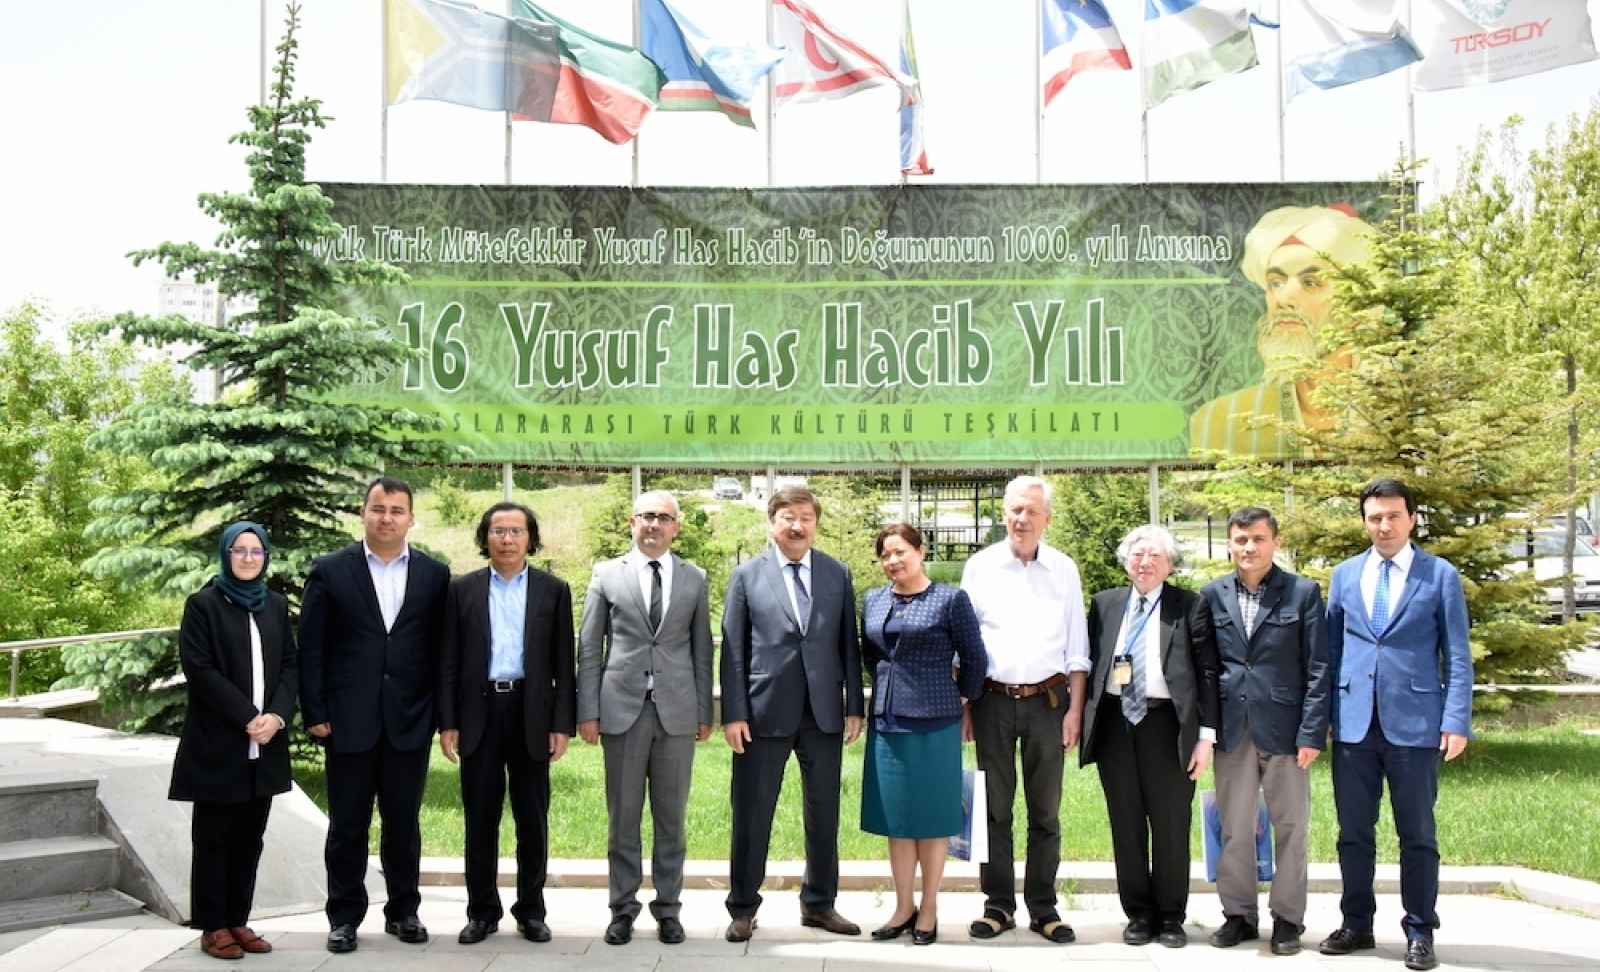 Yusuf Has Hajip's legacy is being transmitted to future generations